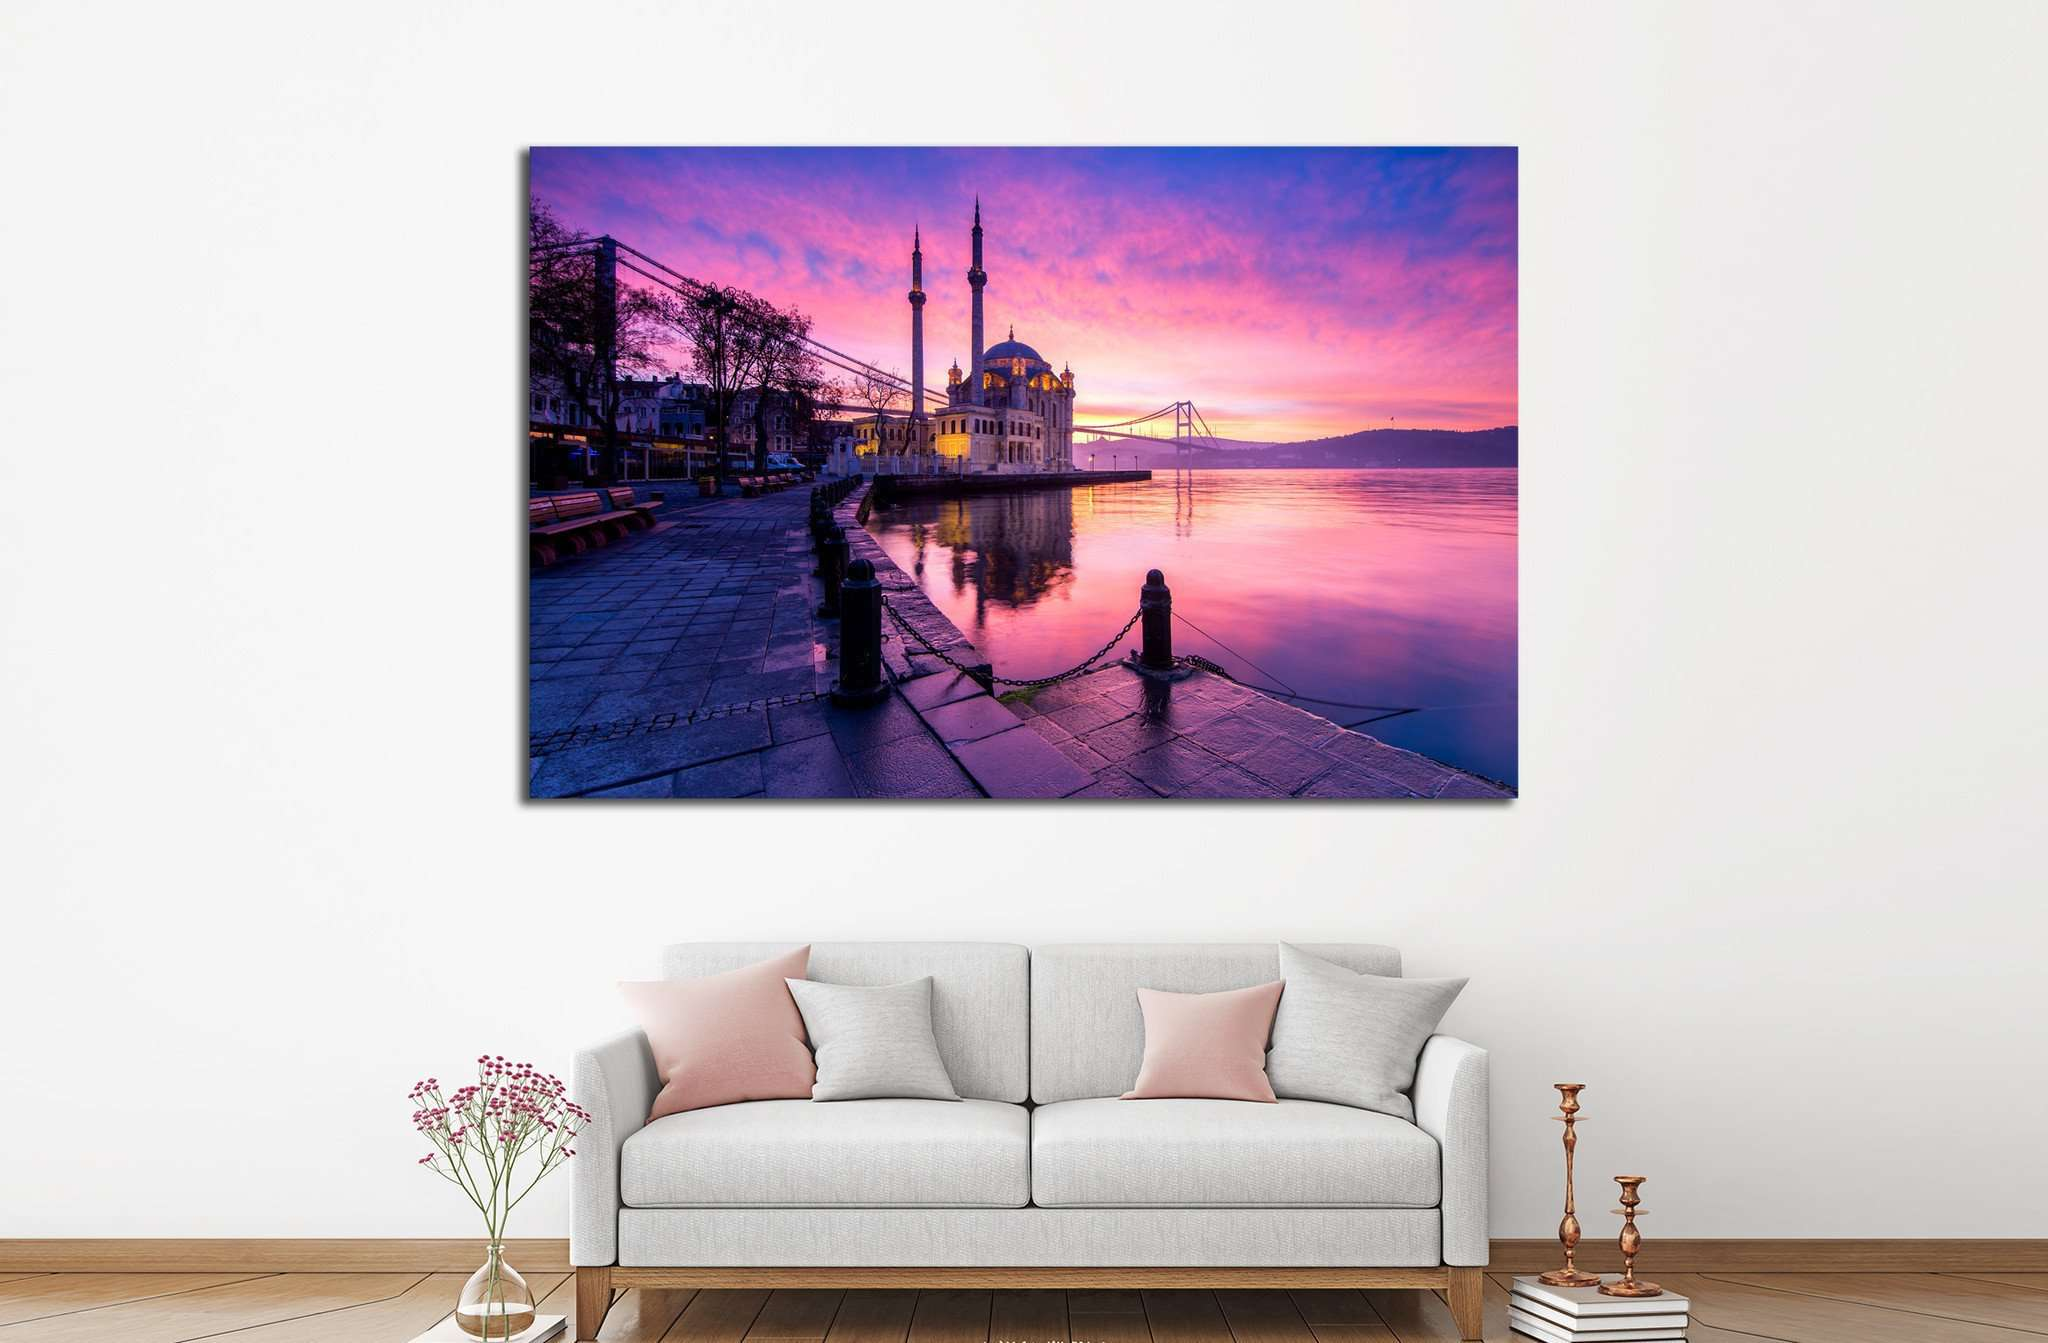 amazing sunrise at ortakoy mosque, istanbul №1302 - canvas print wall art by Zellart